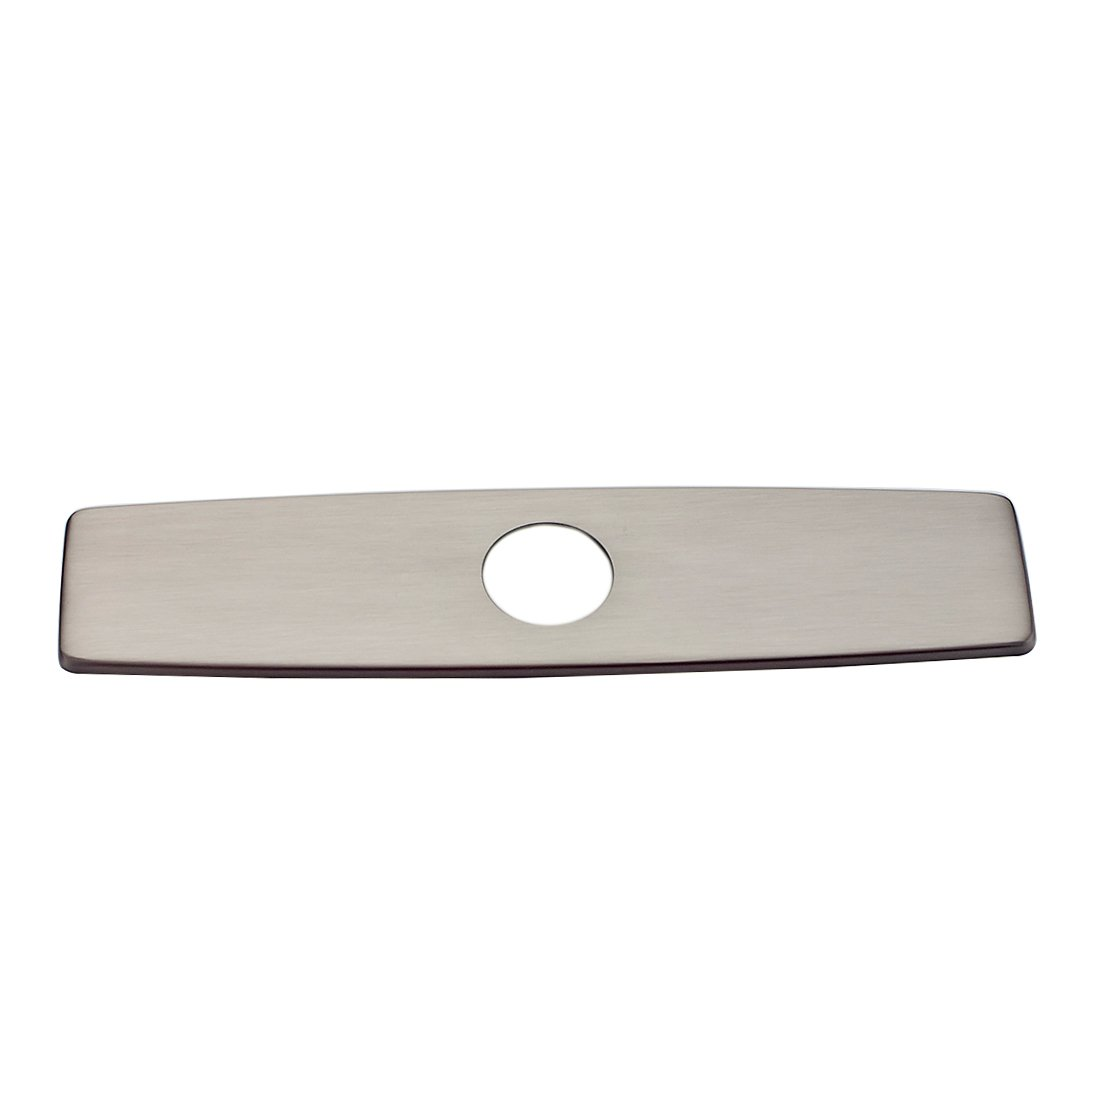 FLG Modern Brushed Nickel Stainless Steel Kitchen Bathroom Sink Hole Faucet 10'' Cover Deck Plate Escutcheon, Covering Unused Mounting Holes